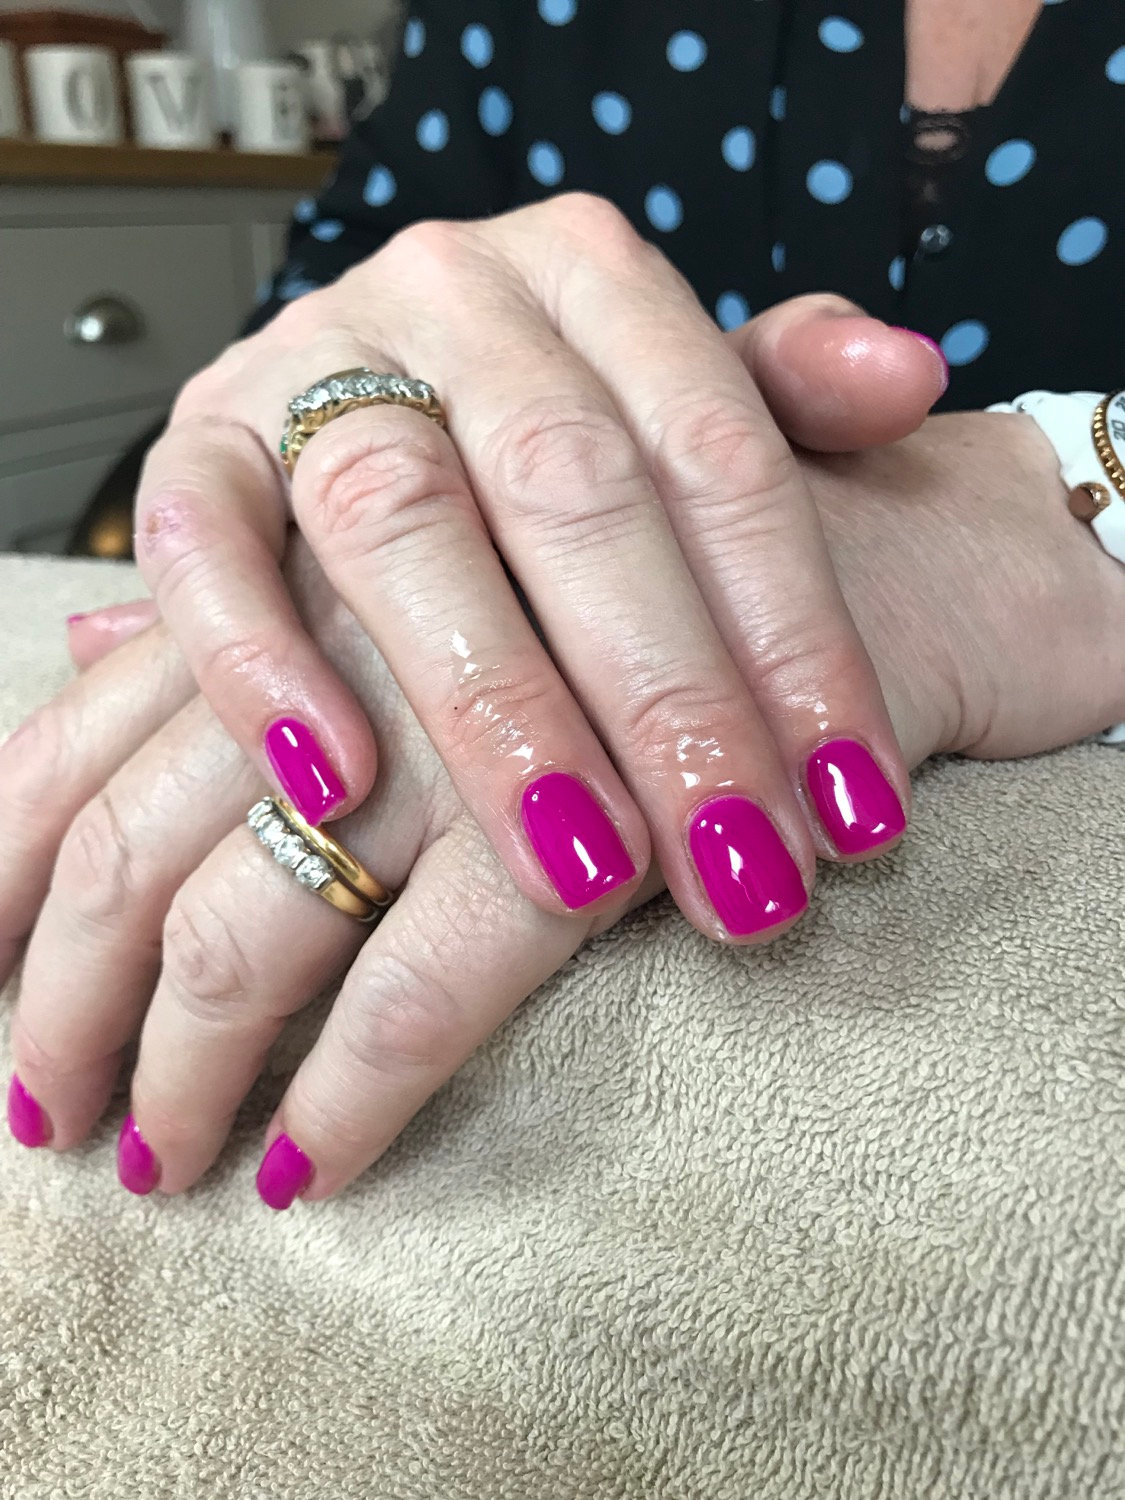 Full manicure with Calgel overlays